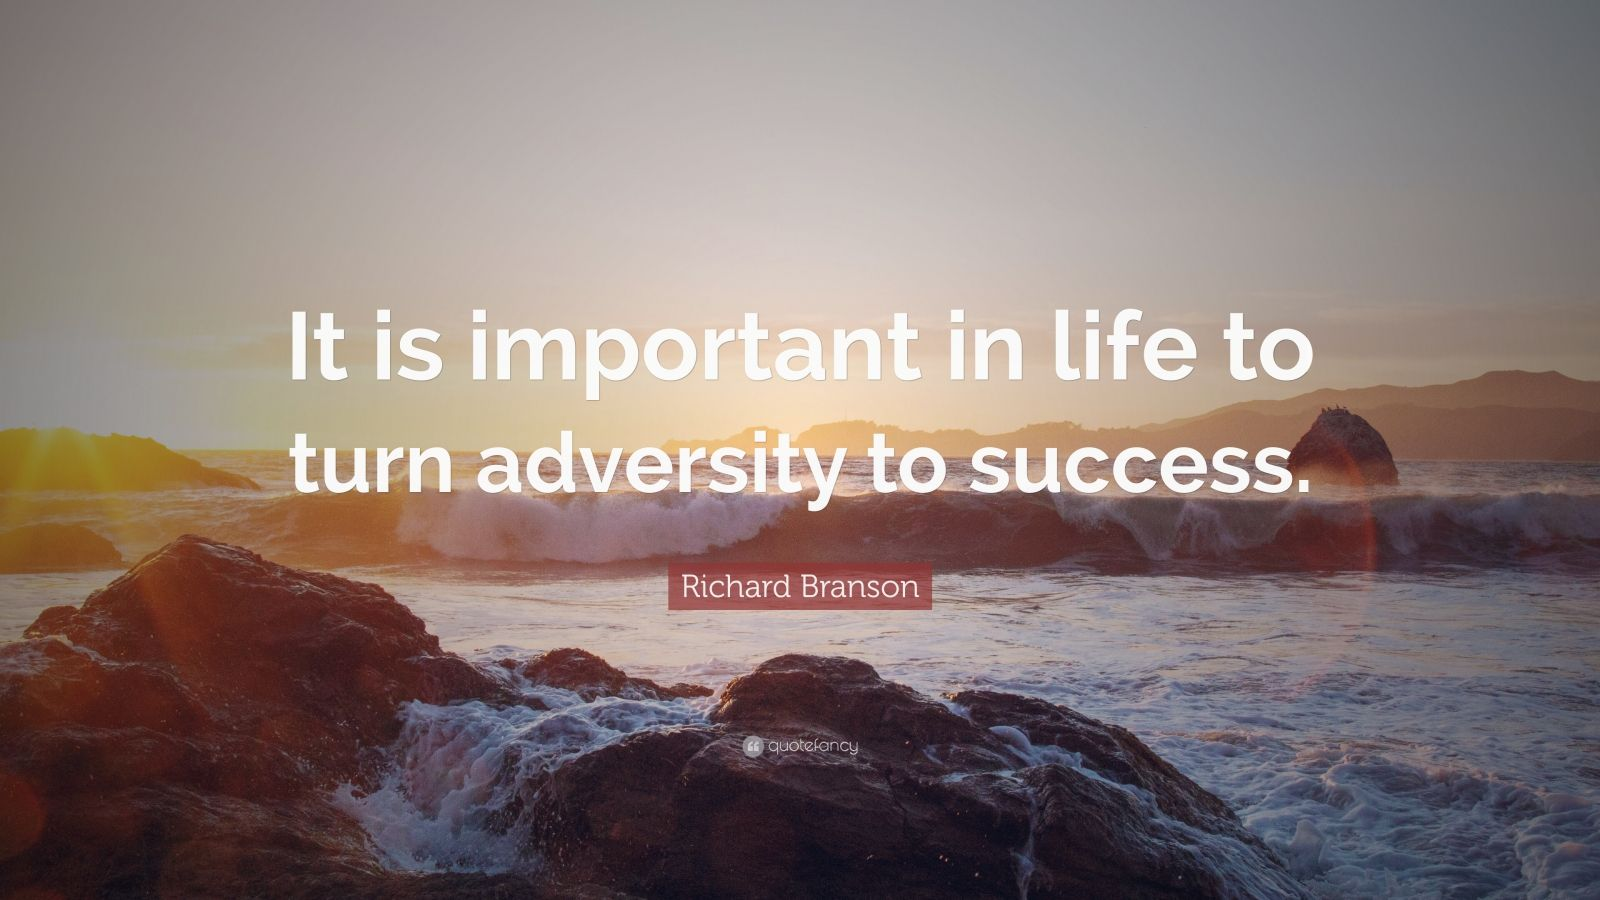 """Richard Branson Quote: """"It is important in life to turn adversity to success."""""""